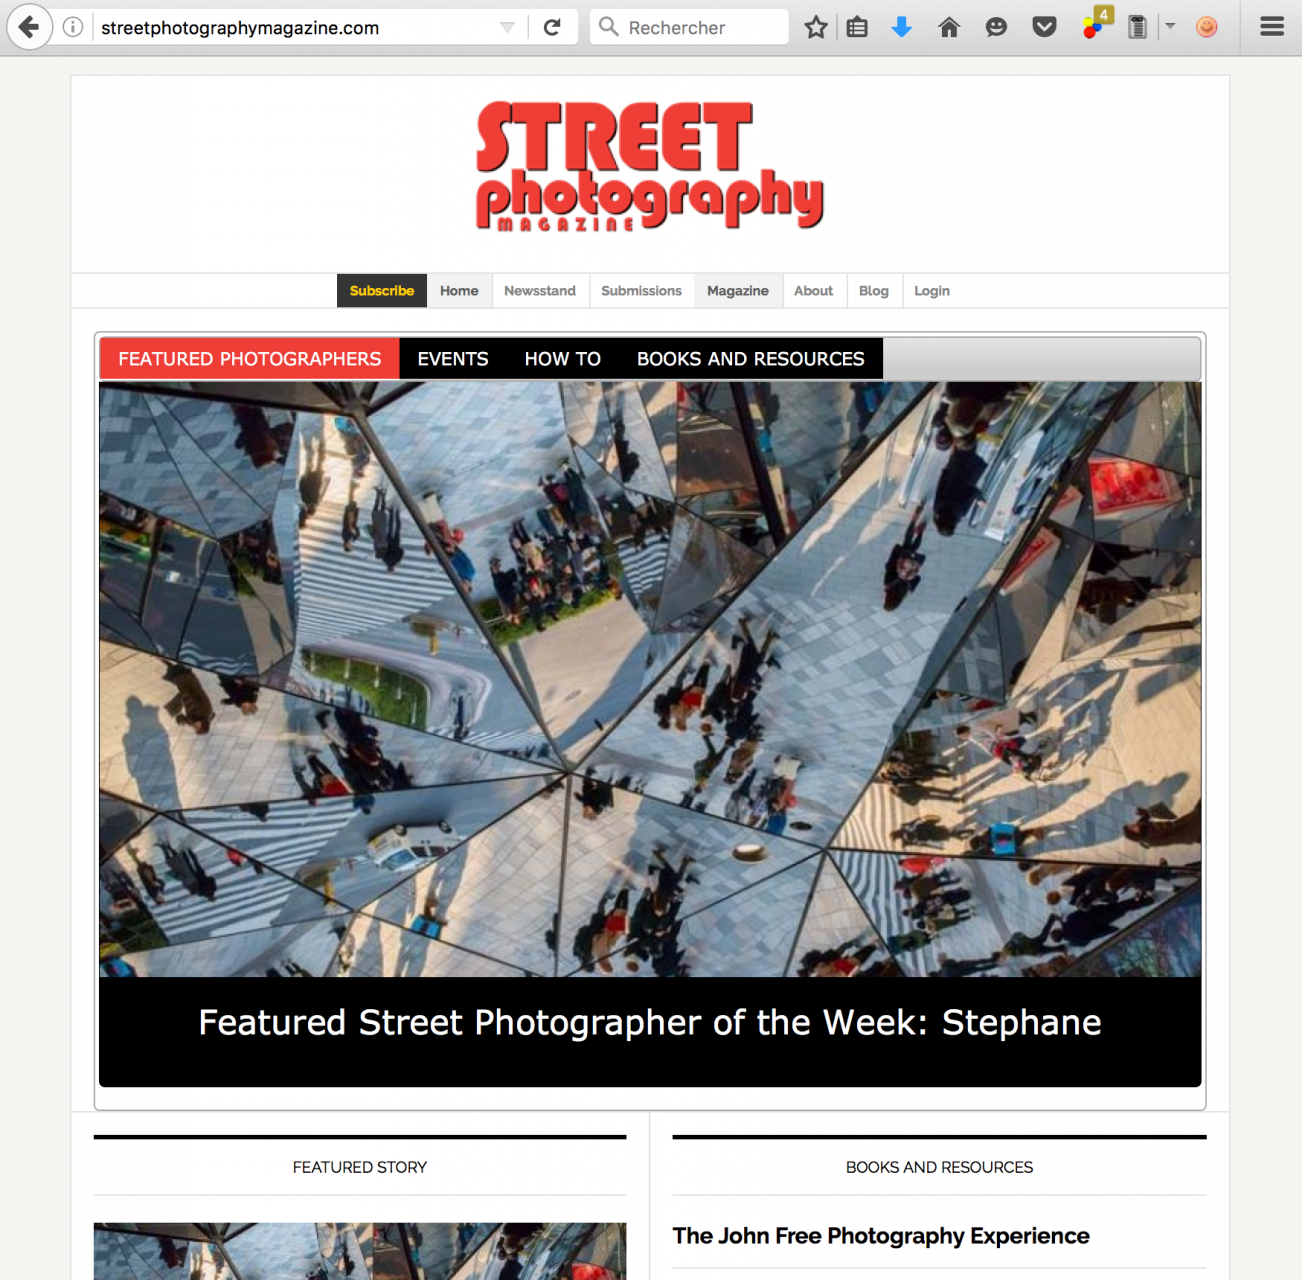 Featured Photographer of the week